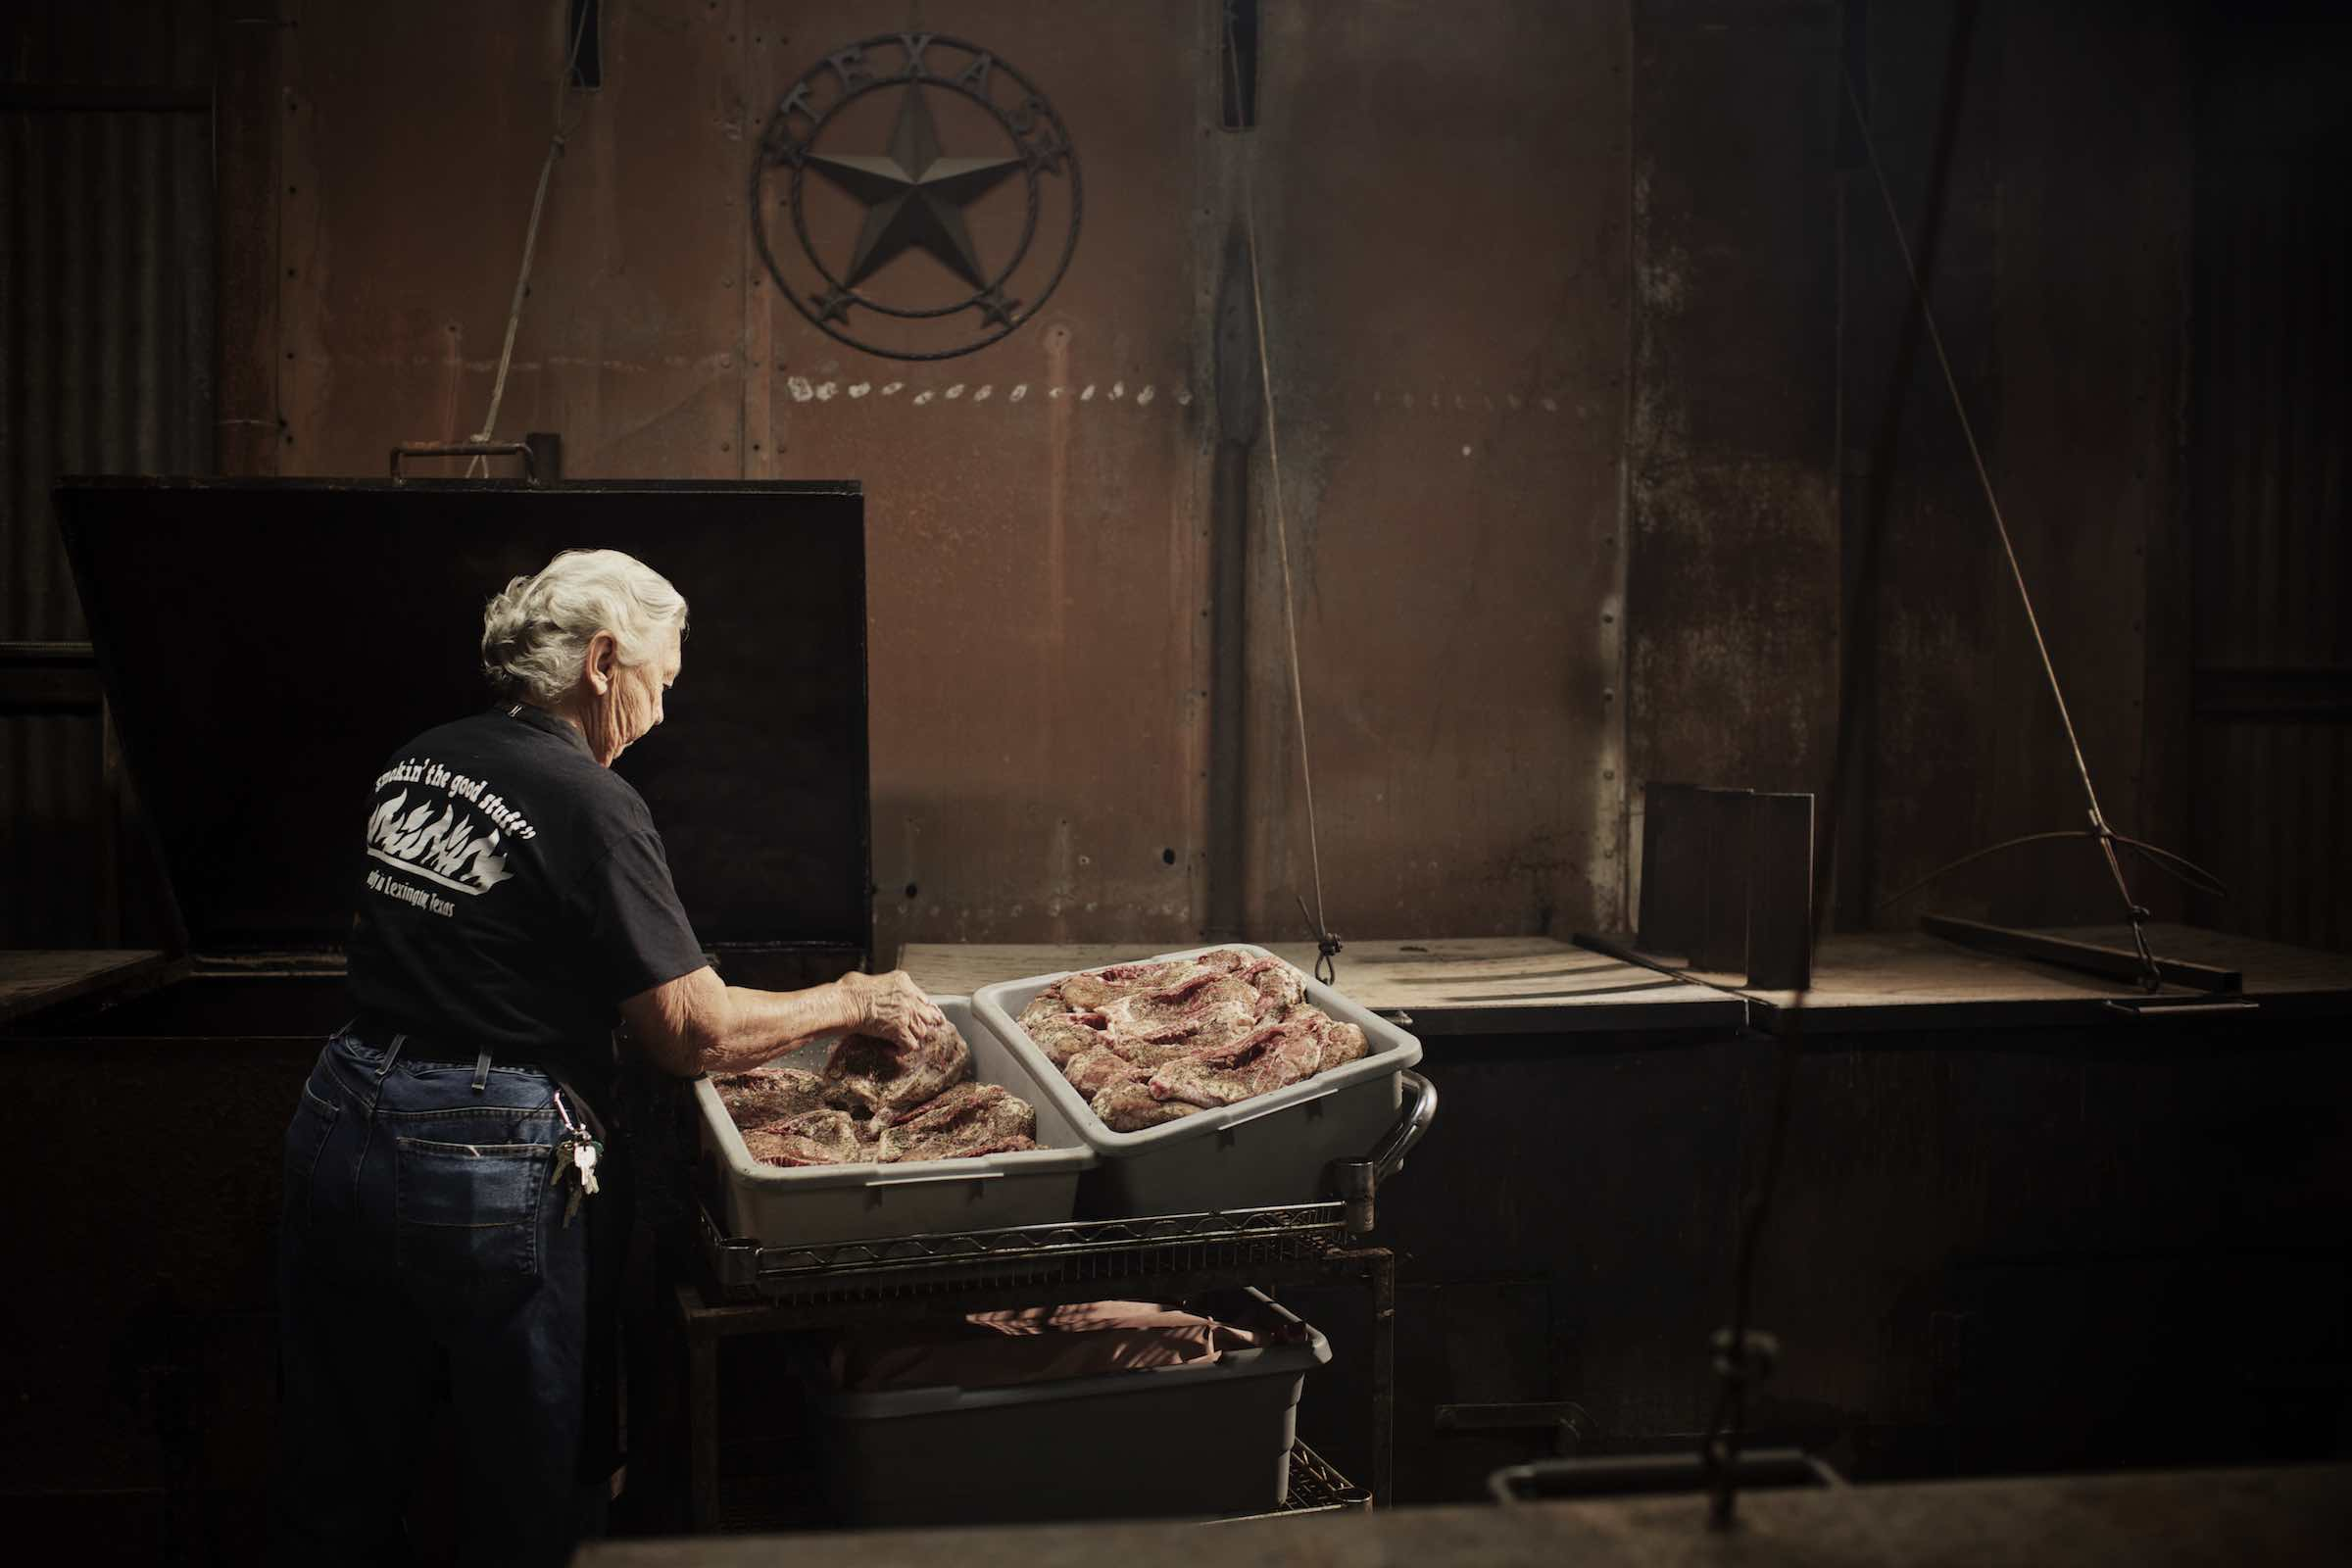 Jody Horton Photography - Pit master handling large cuts of seasoned meat in beige tubs.